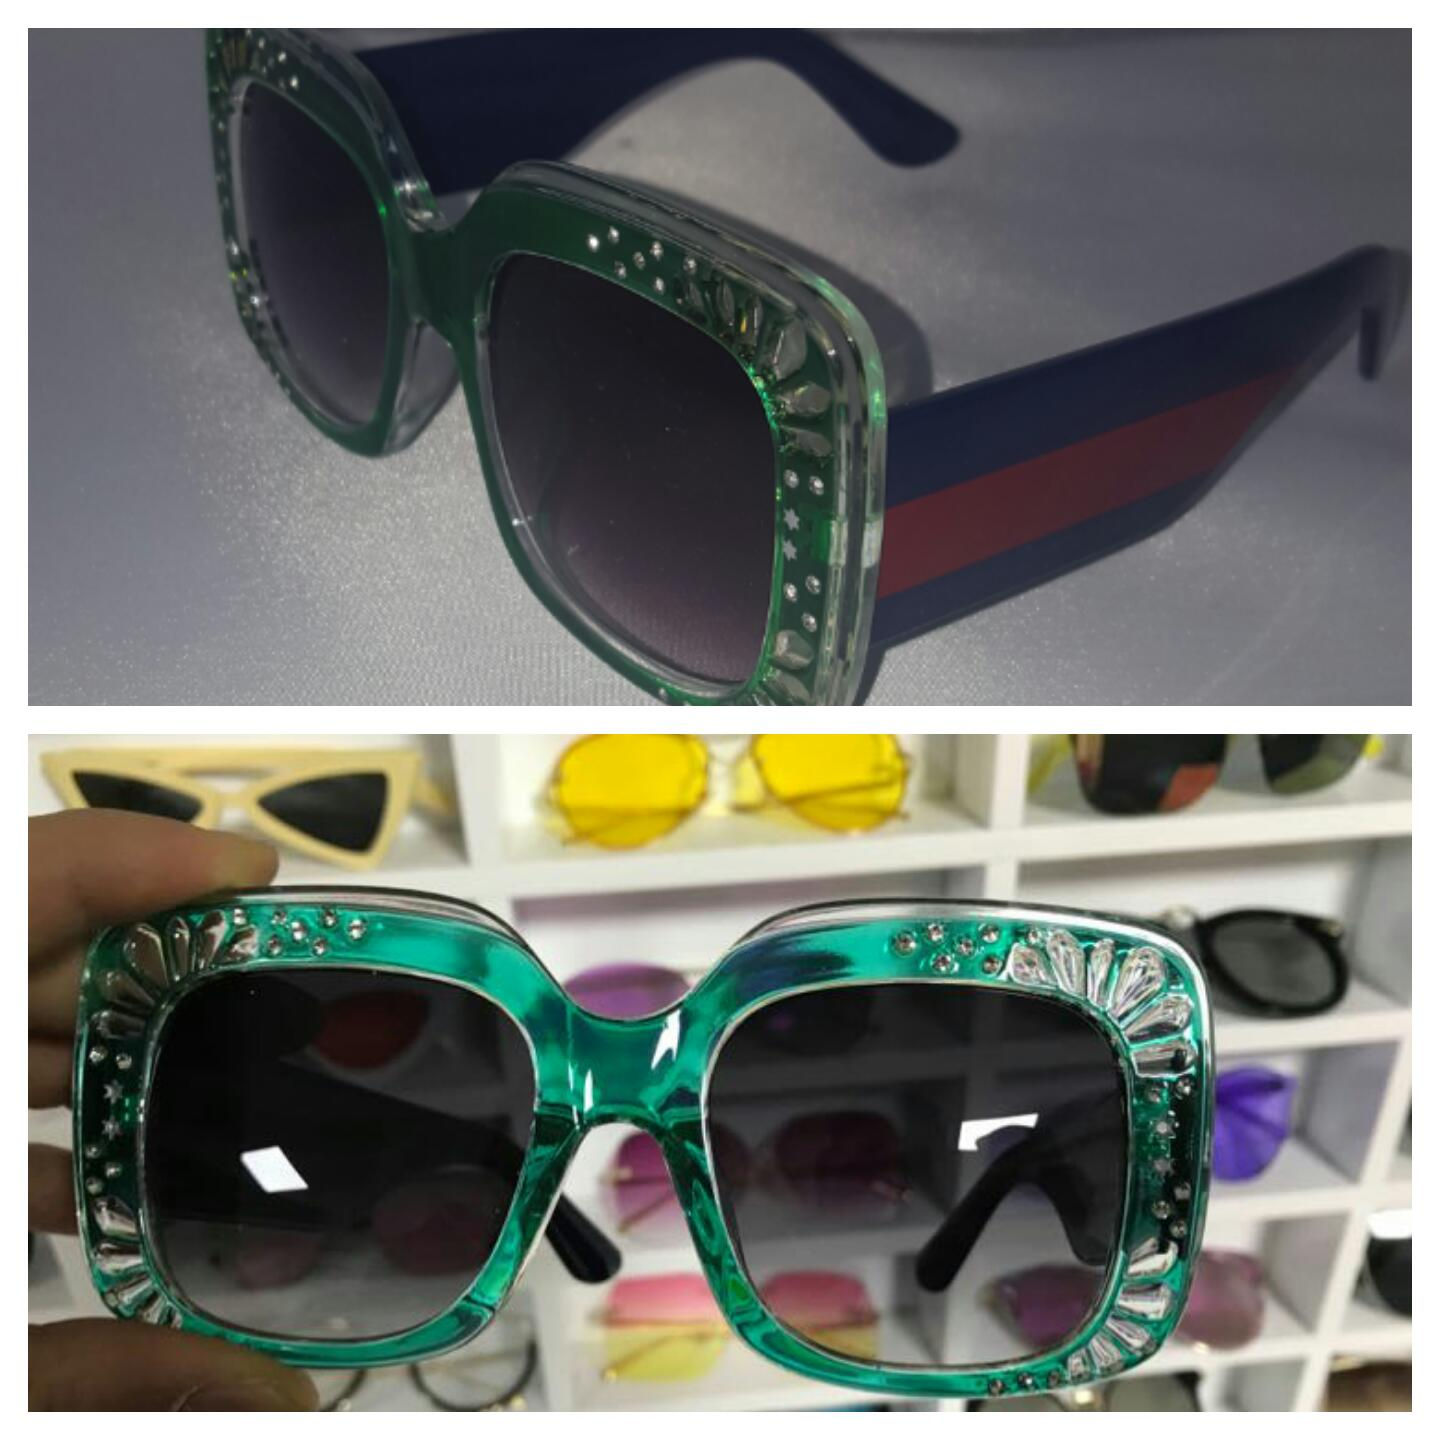 Hype Stripe Oversized Sunglasses *CLEARANCE* $8 limited quantities